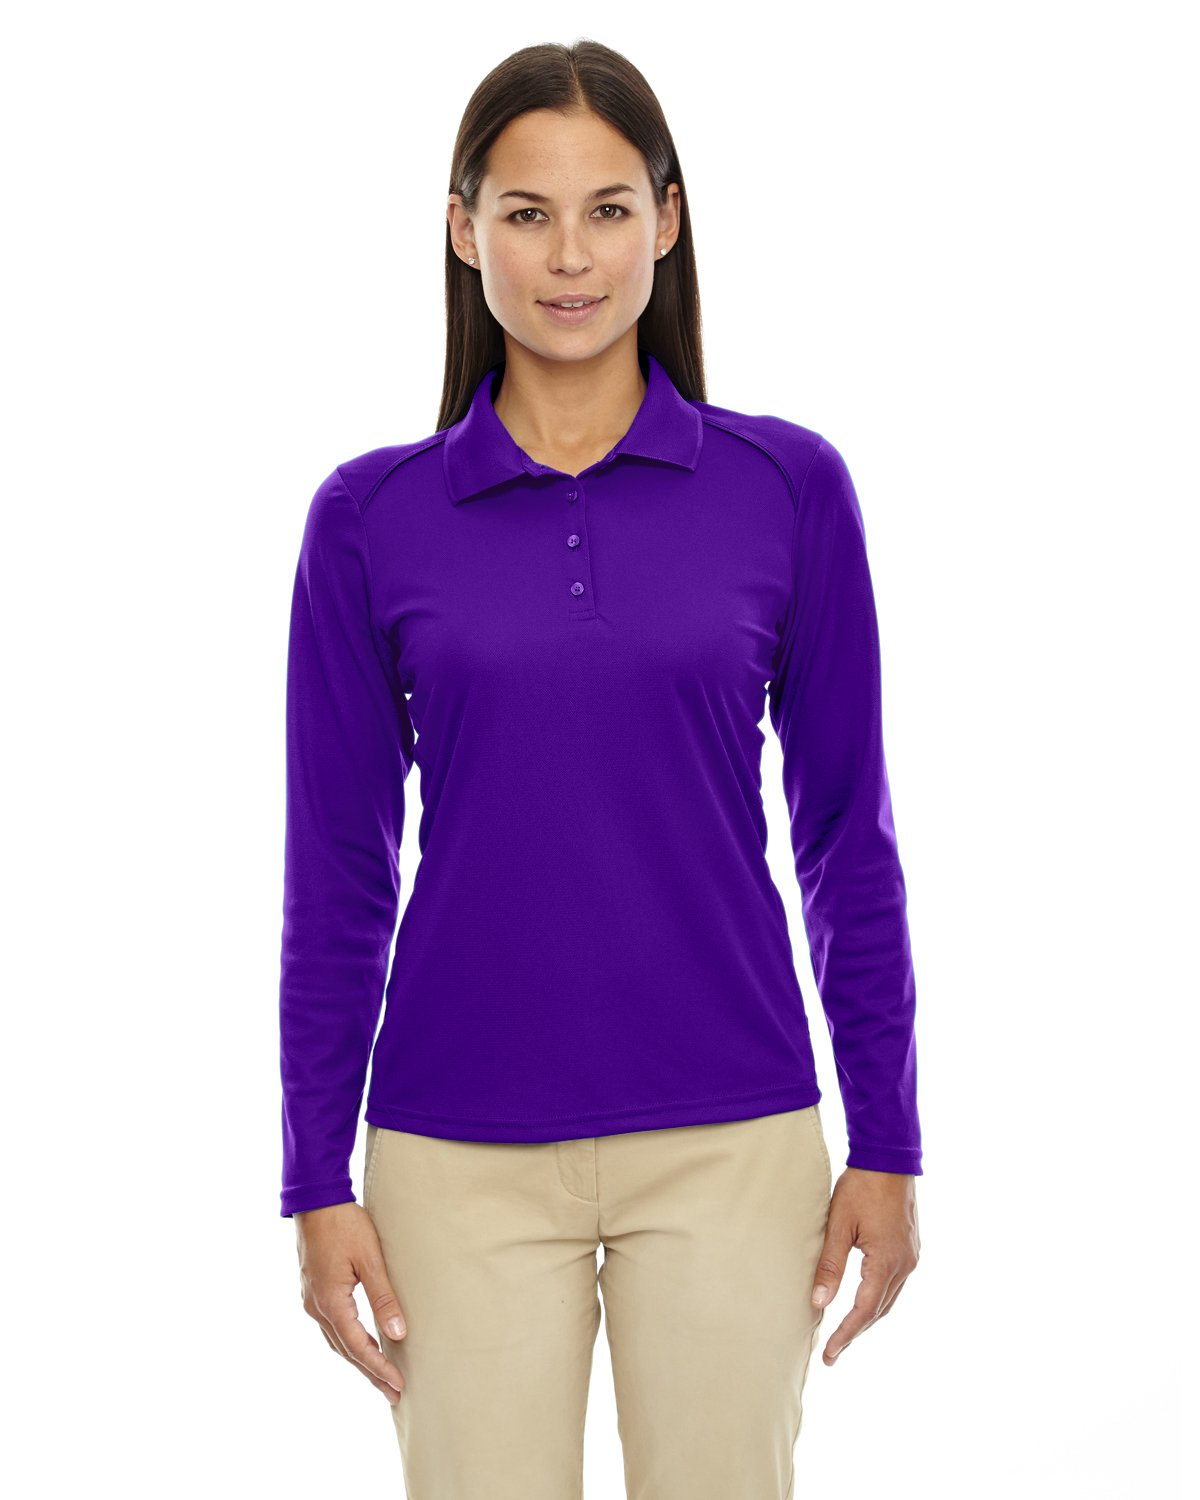 Ash City Ladies Armour Long Sleeve Polo (XX-Large, Campus Purple) by Ash City Apparel